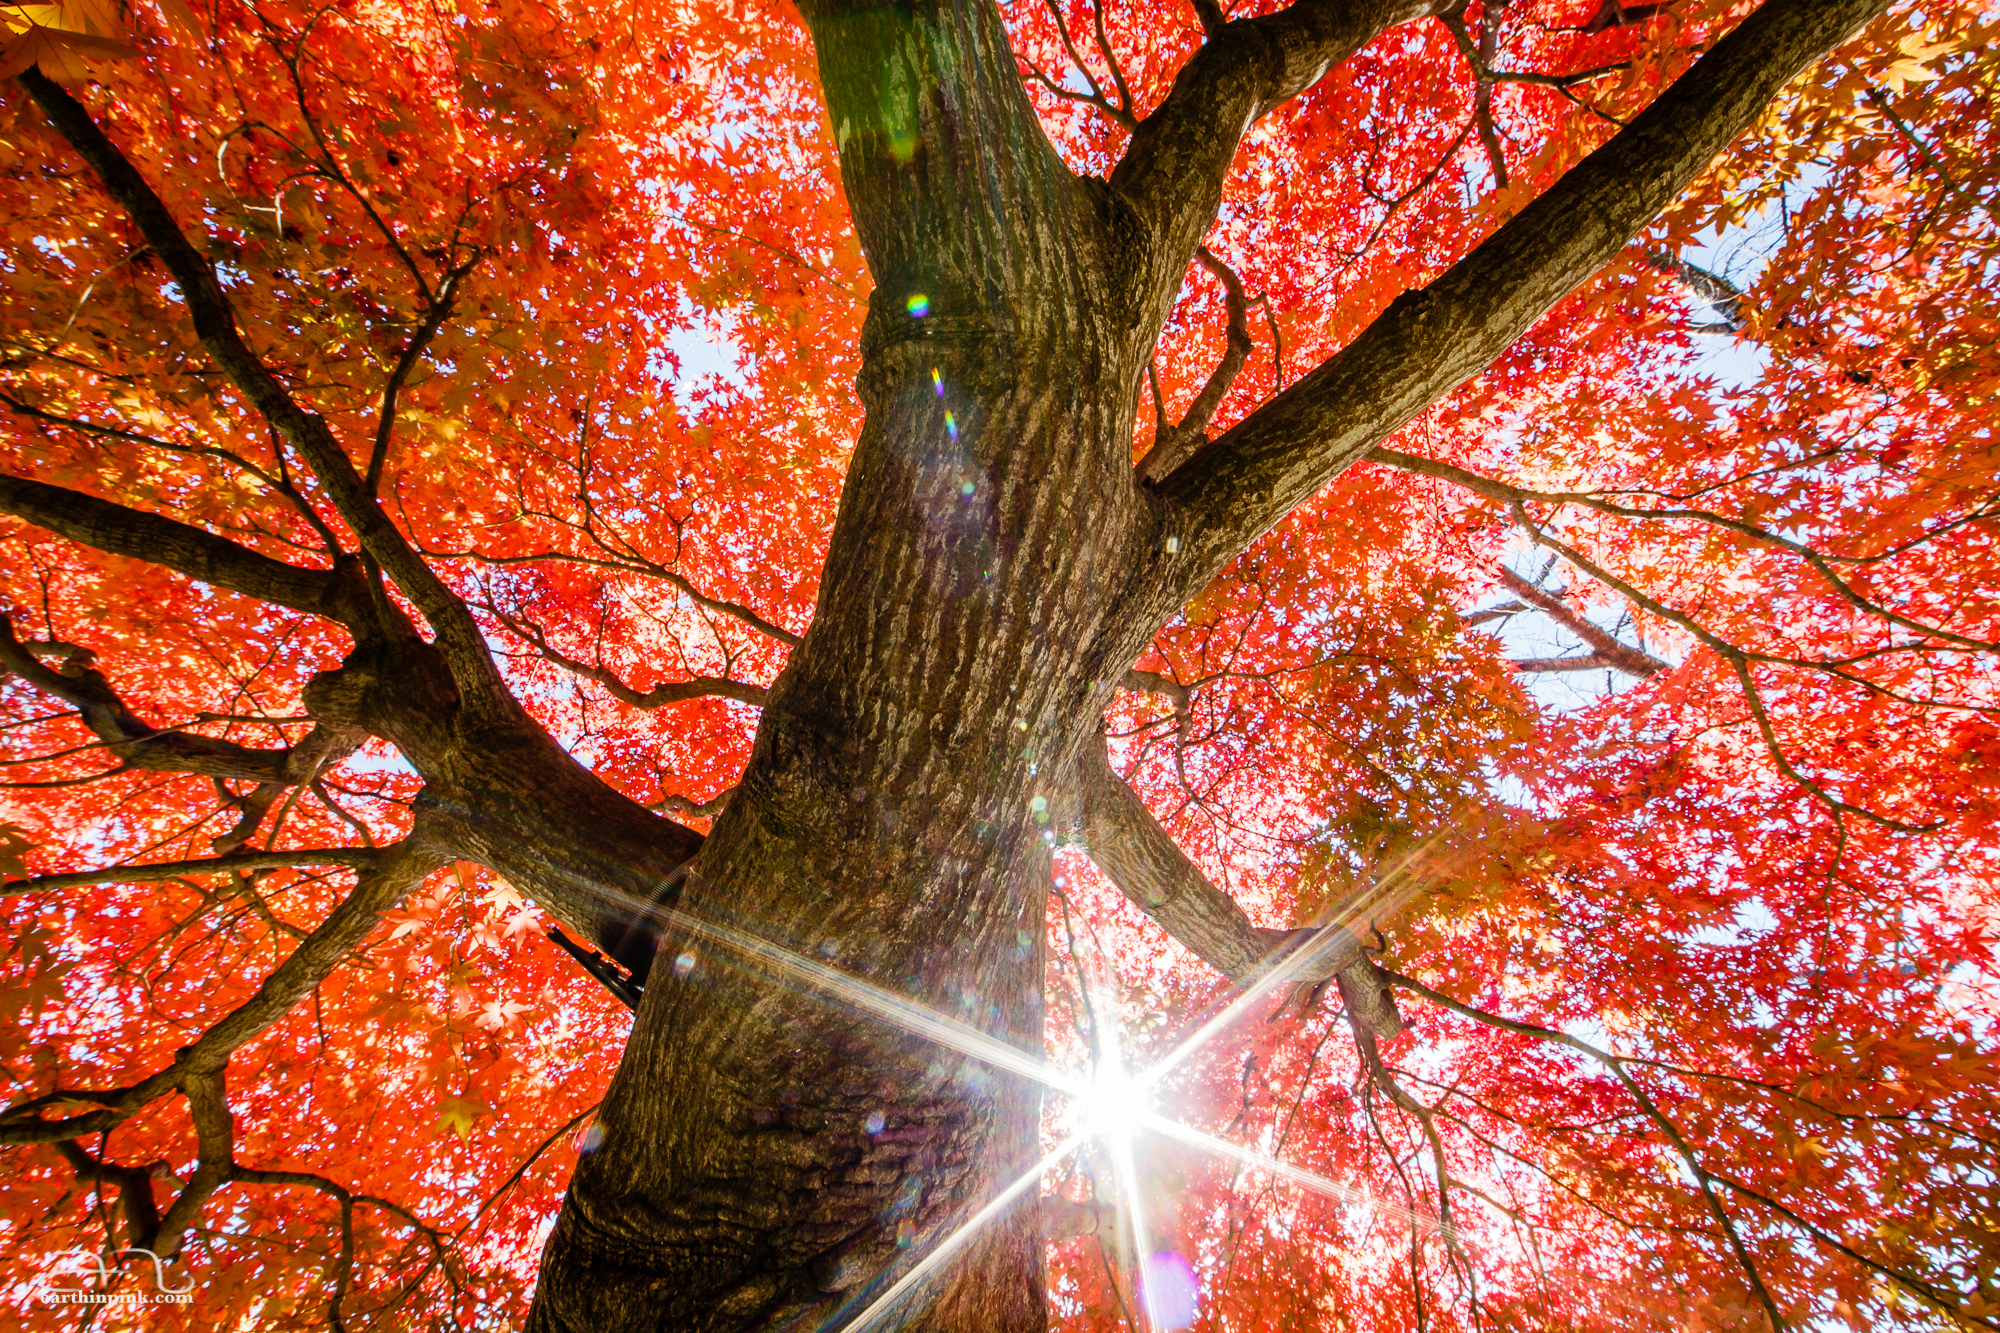 The morning sun shines through the branches of a remarkably red maple tree.